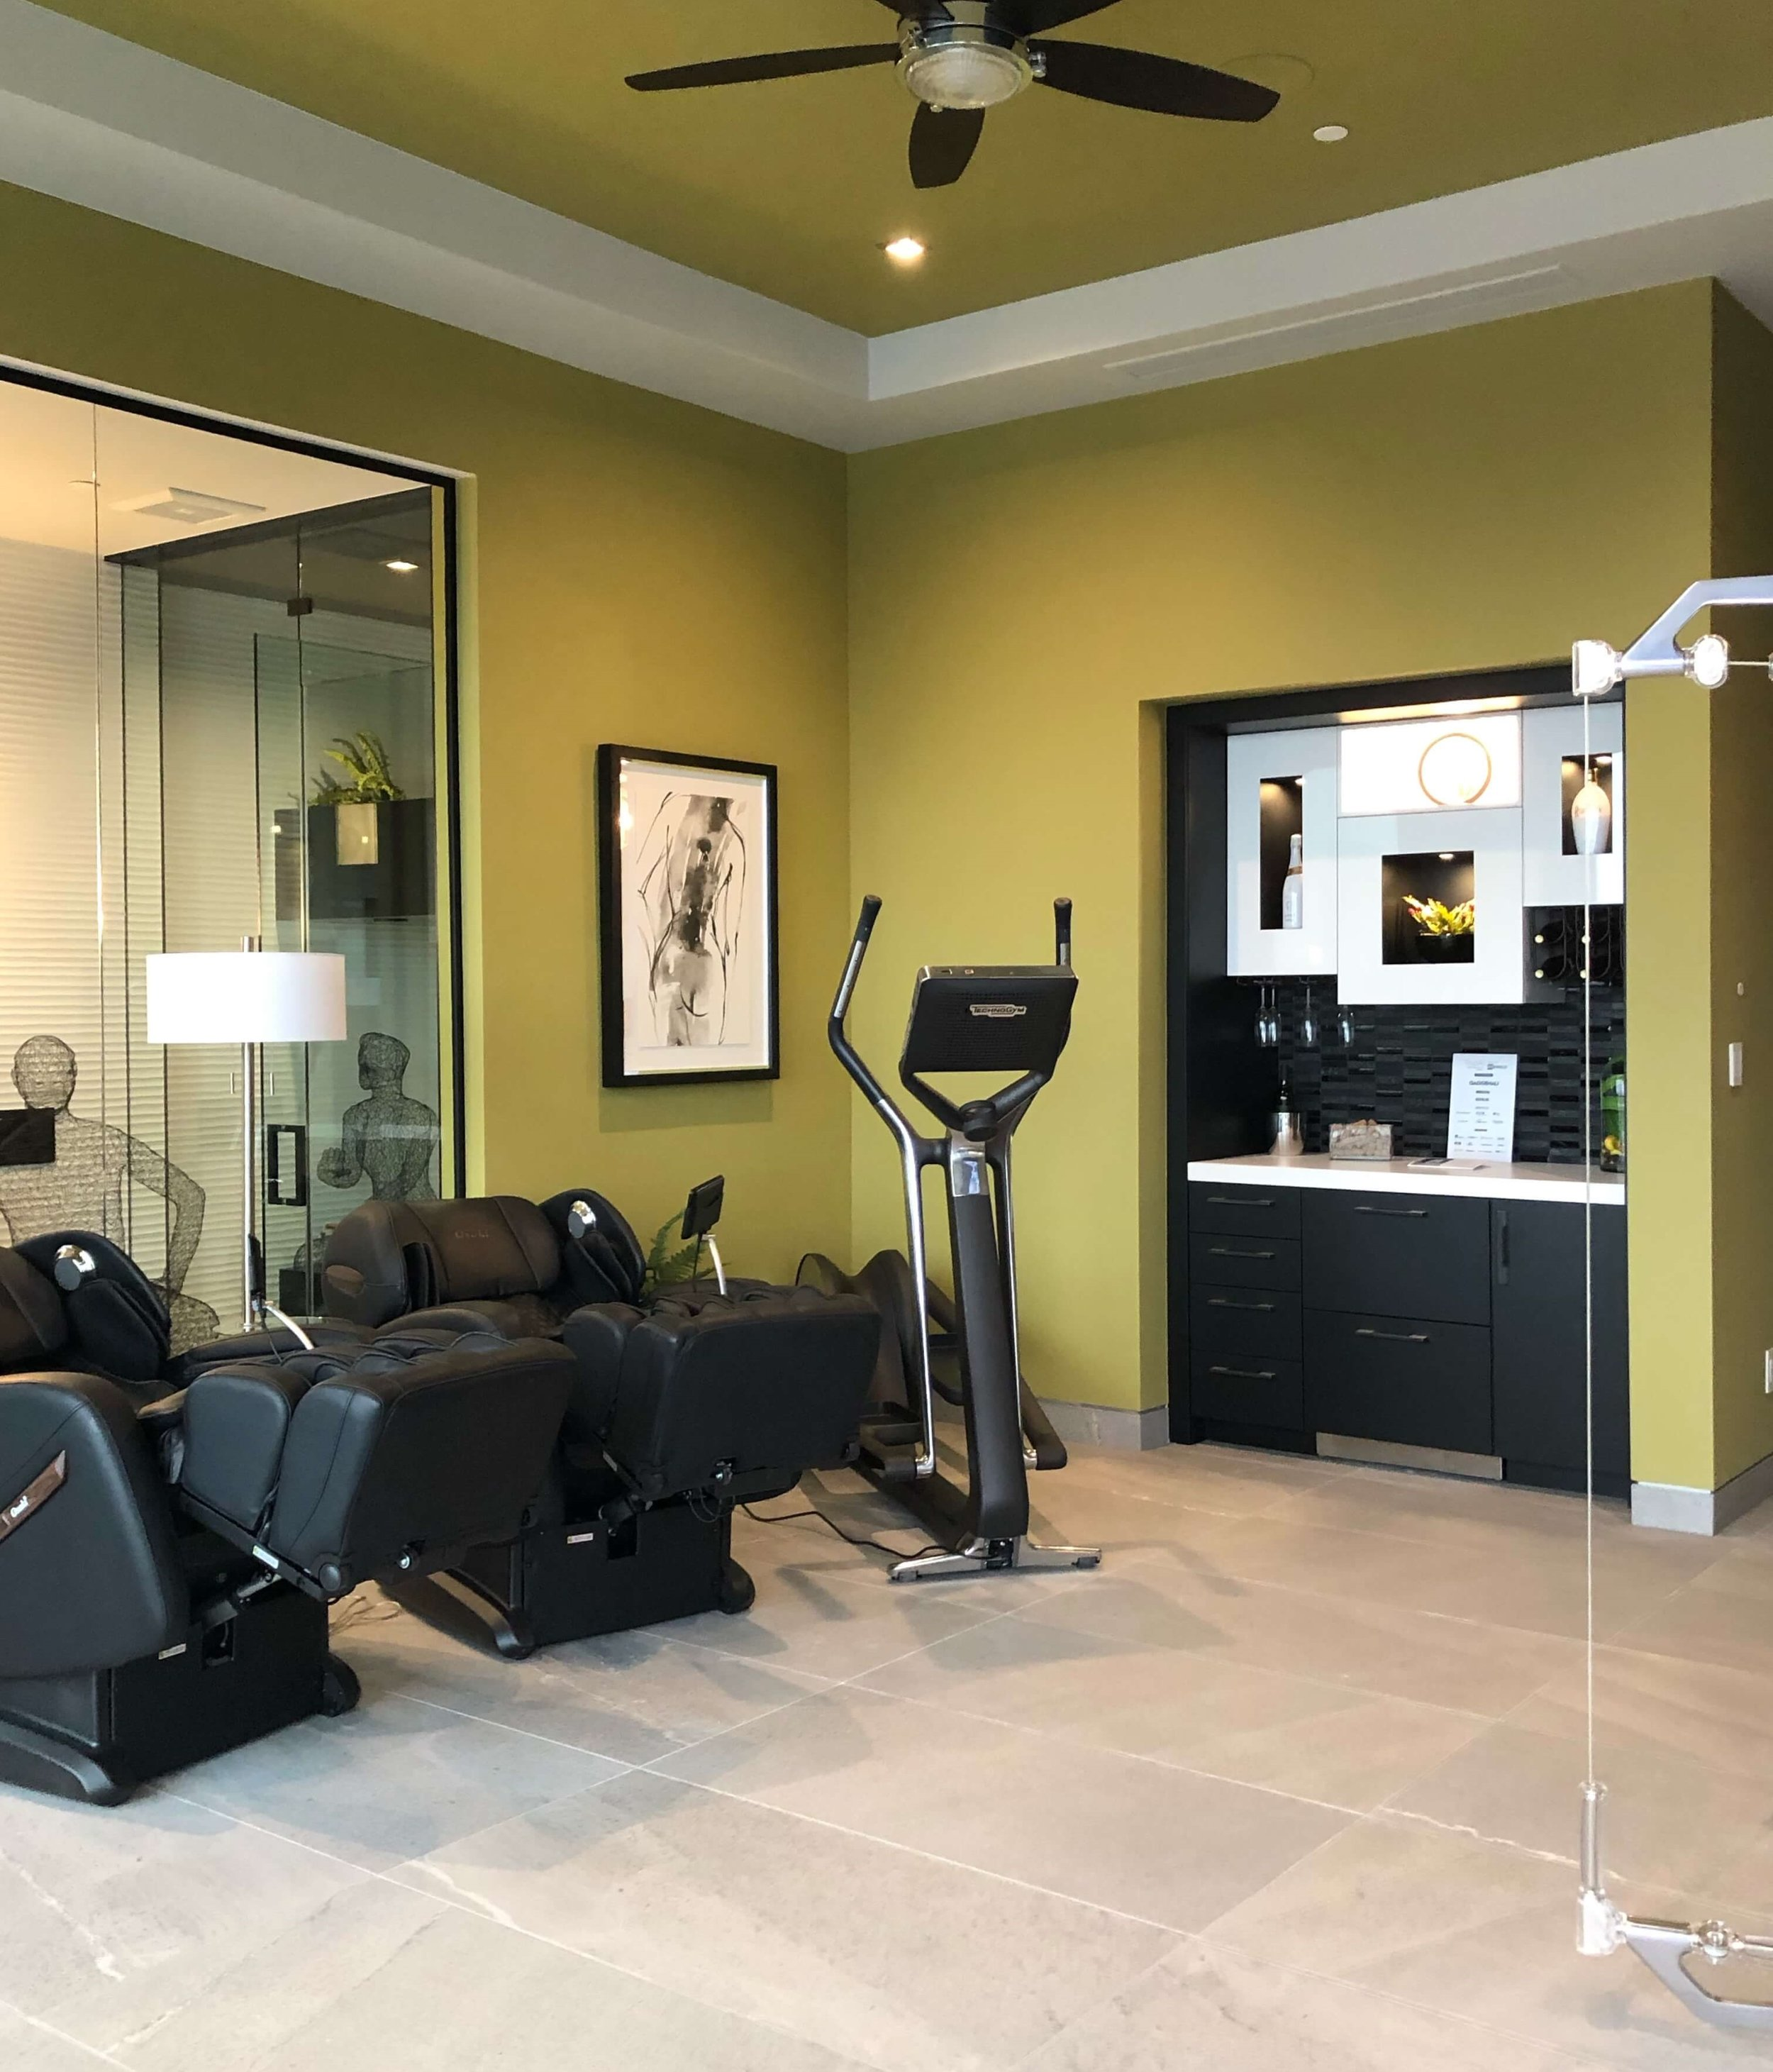 Exercise room equipped with massage chairs, The New American Home Tour 2019 | Designed and built by Sun West Custom Homes  #contemporaryhome #homegym #exerciseroom